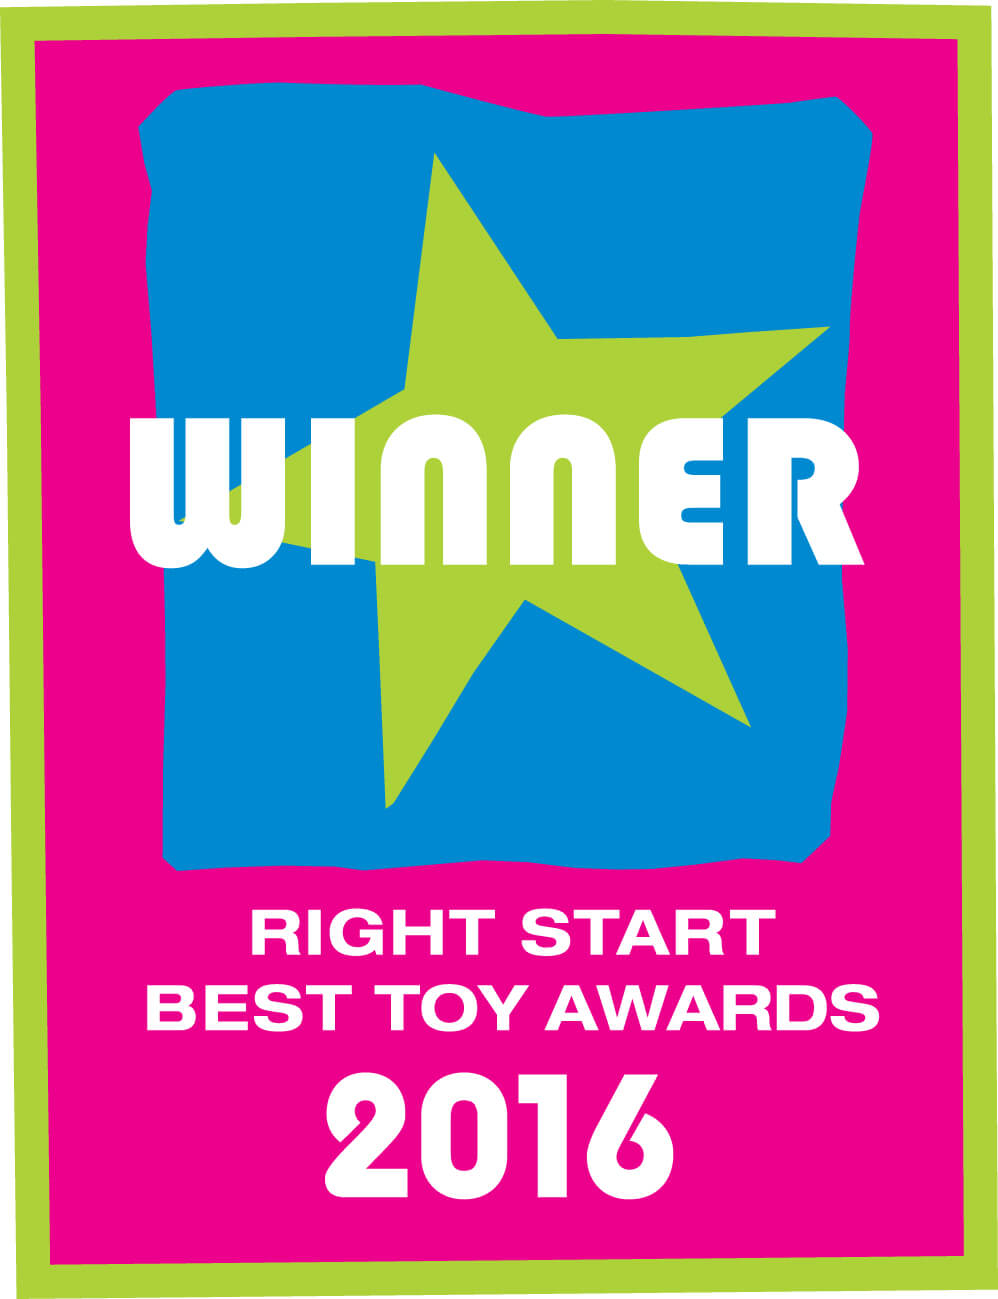 Right Start Award Wooden Race Car Transporter